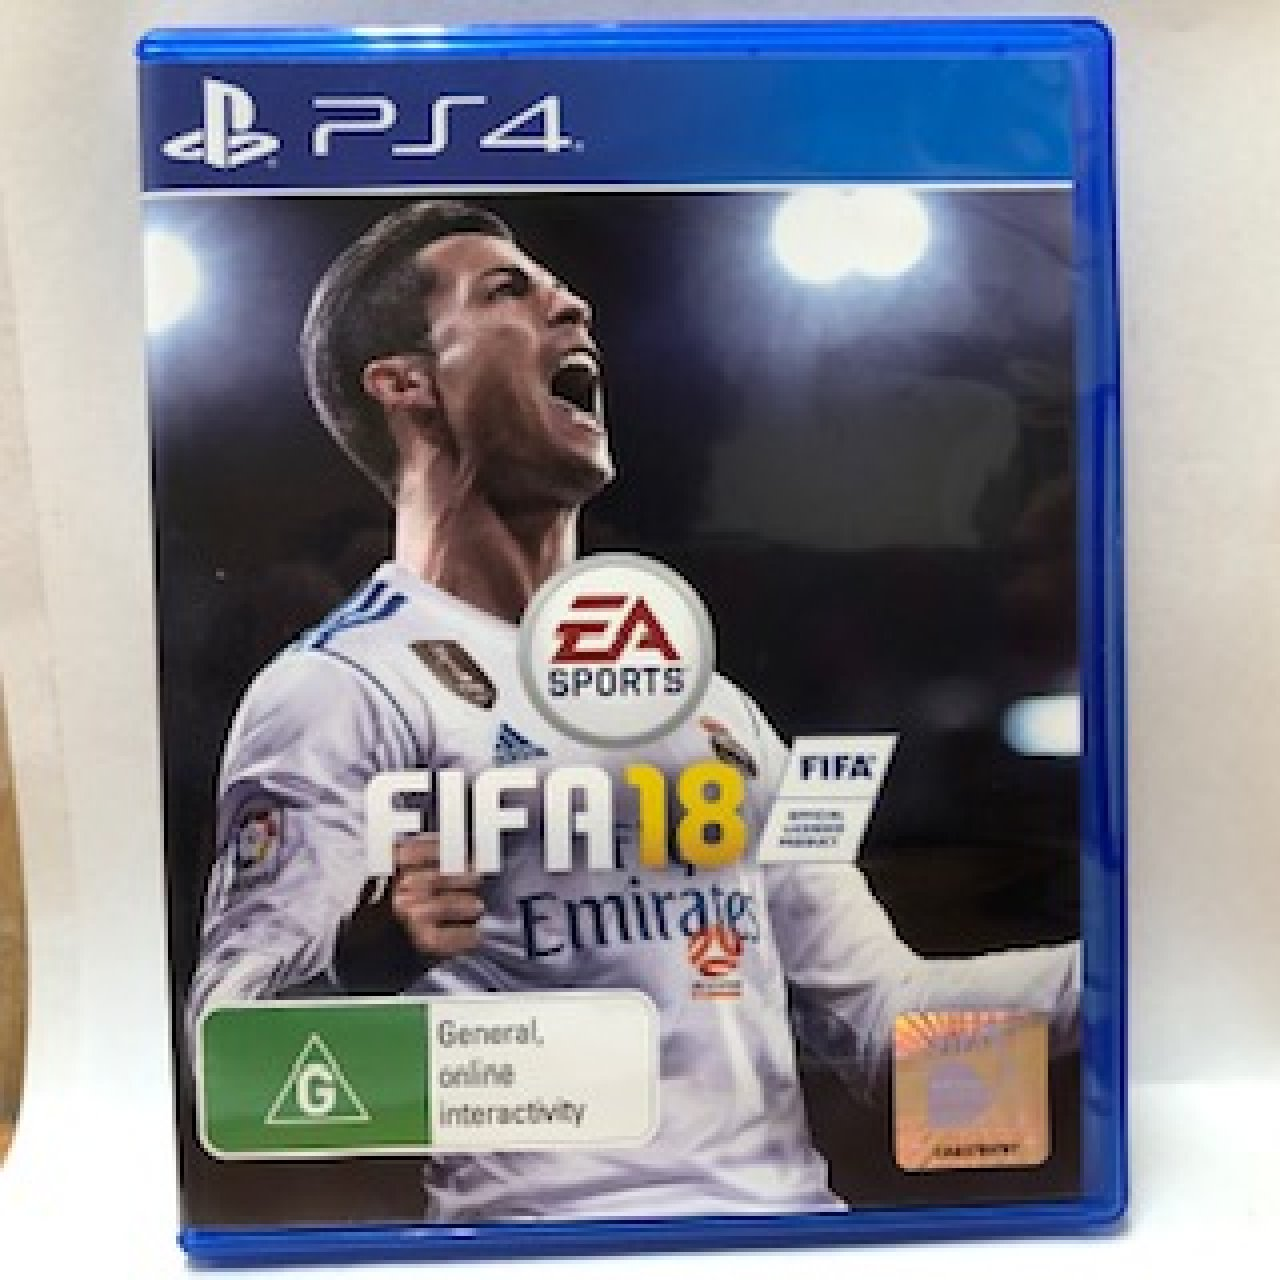 PS4 - EA Sports - FIFA 18 - Game